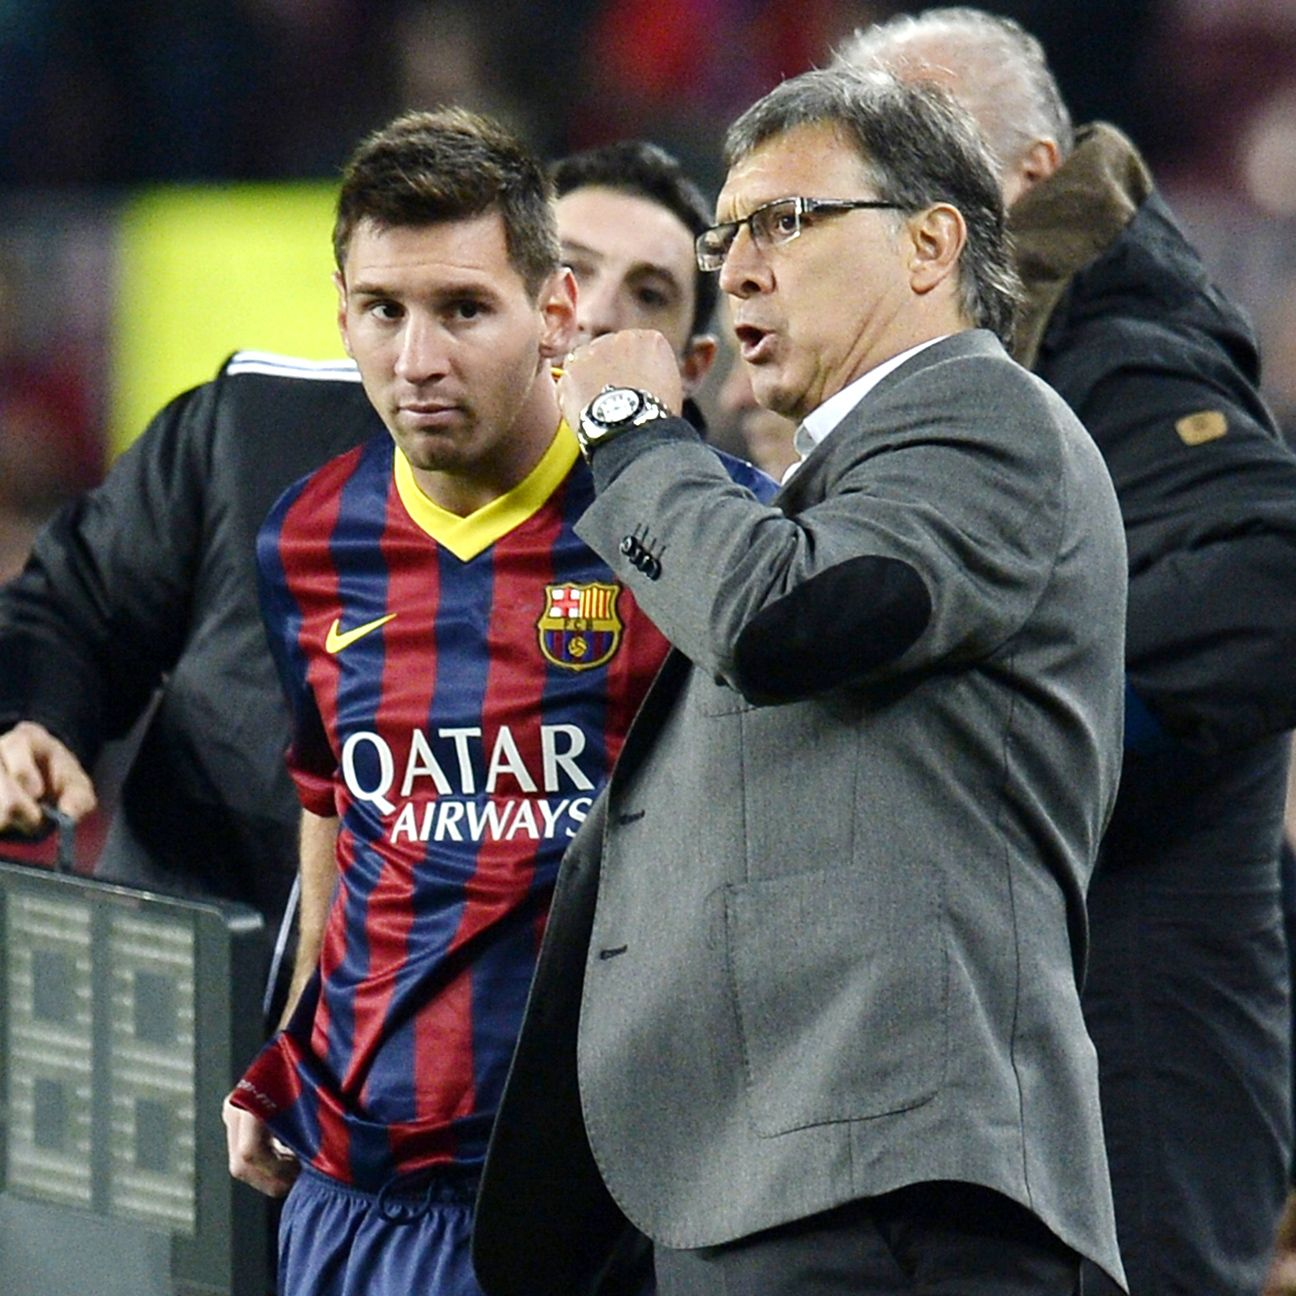 Lionel Messi and Gerardo Martino's one year together in Barcelona resulted in a trophy-less season at the Camp Nou.